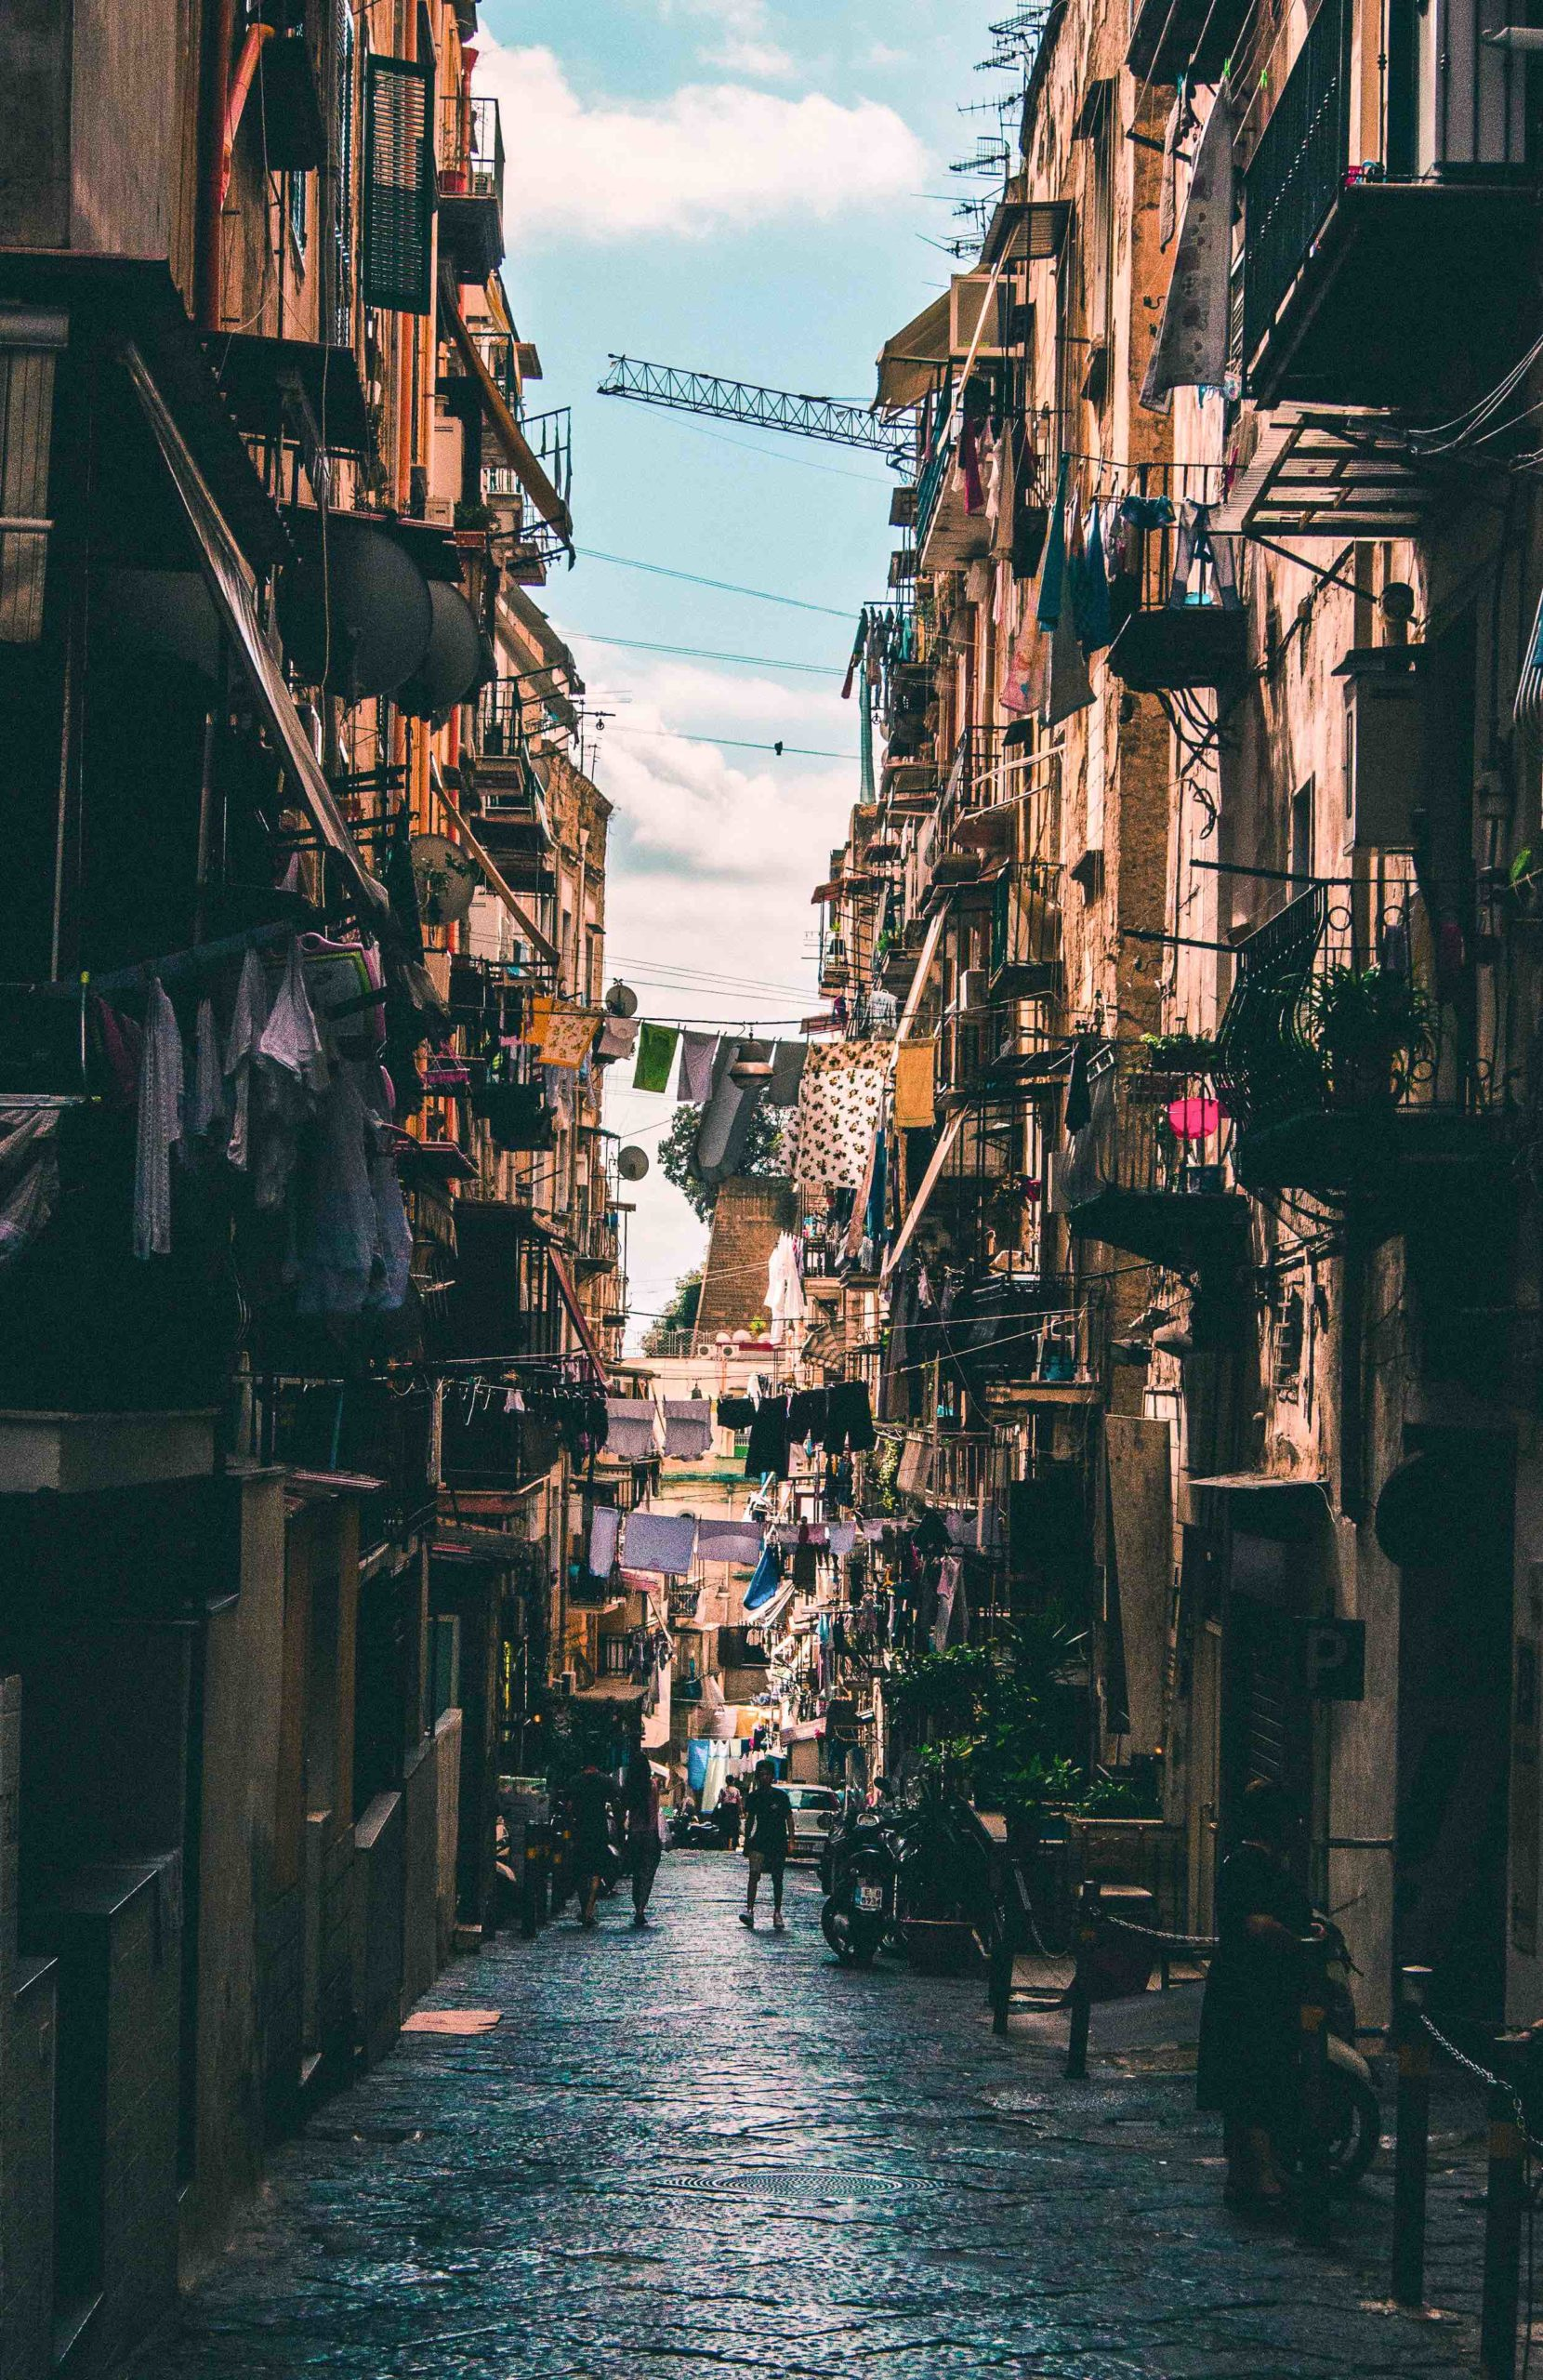 A busy street in Naples